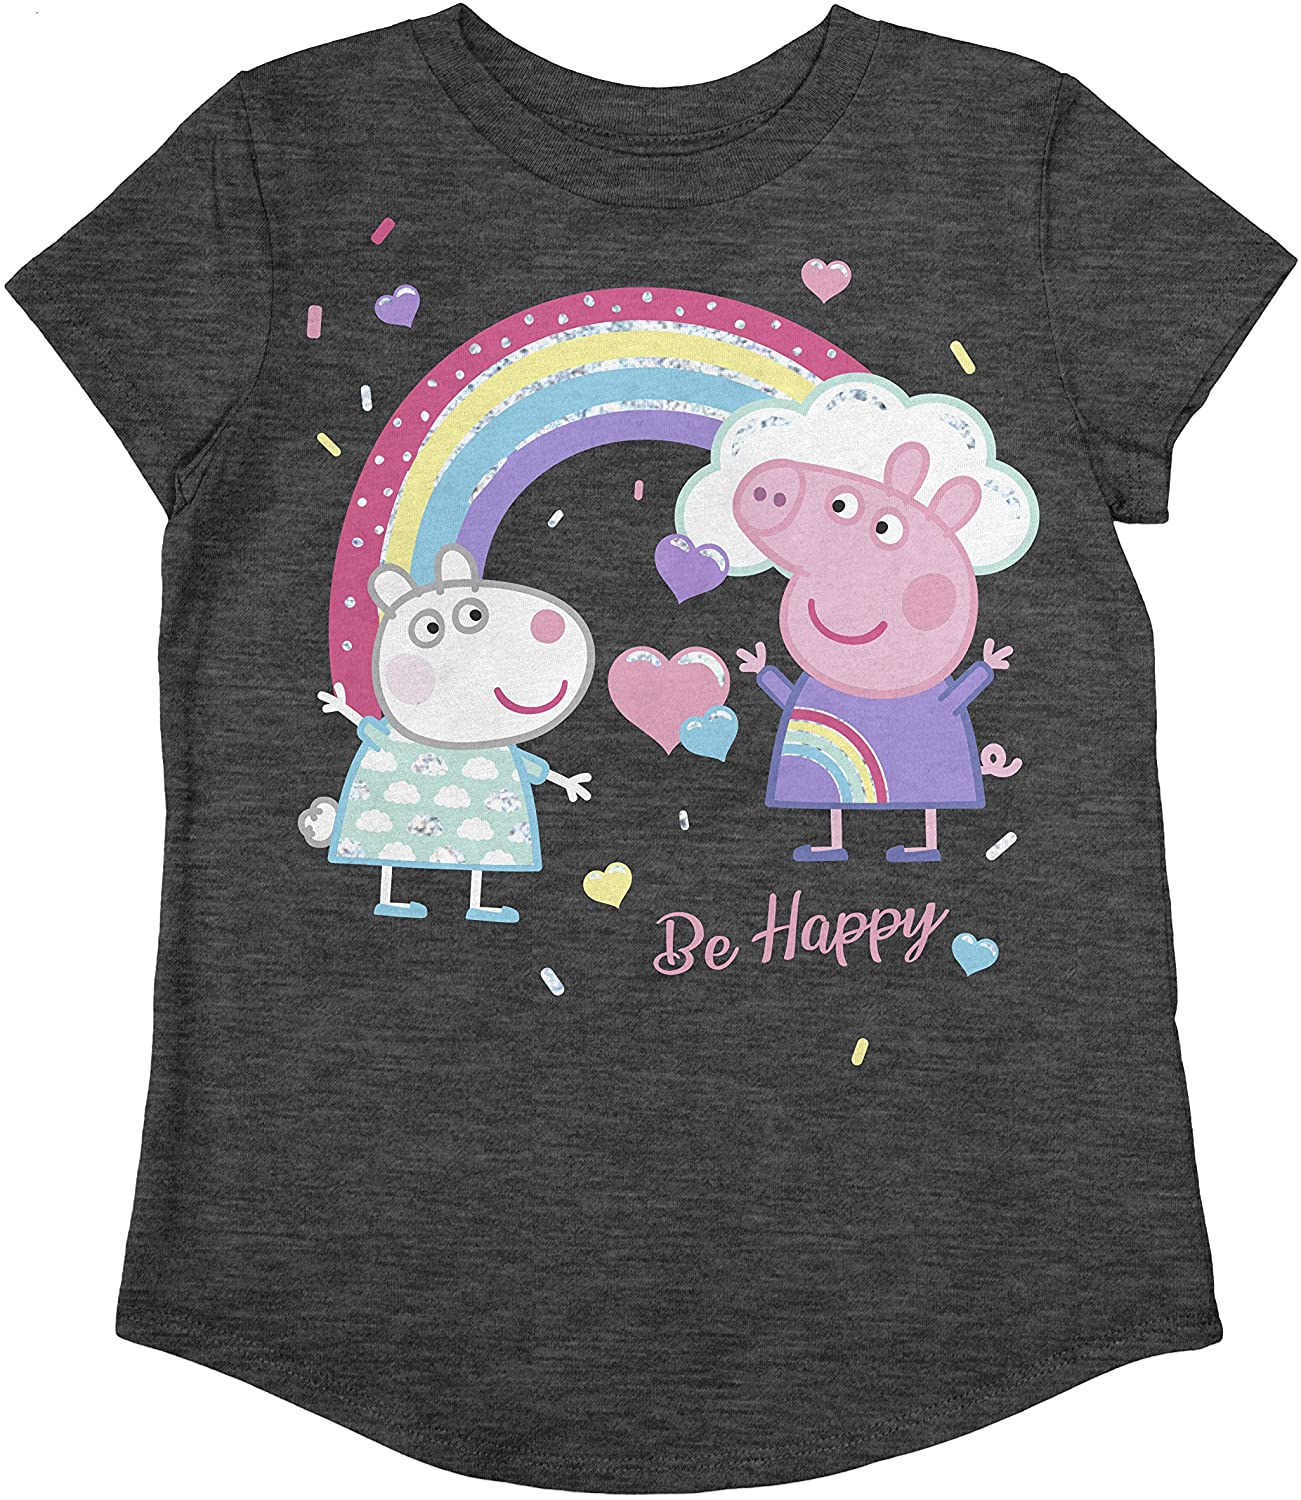 Jumping Beans Toddler Girls Peppa Pig Be Happy SS Tee